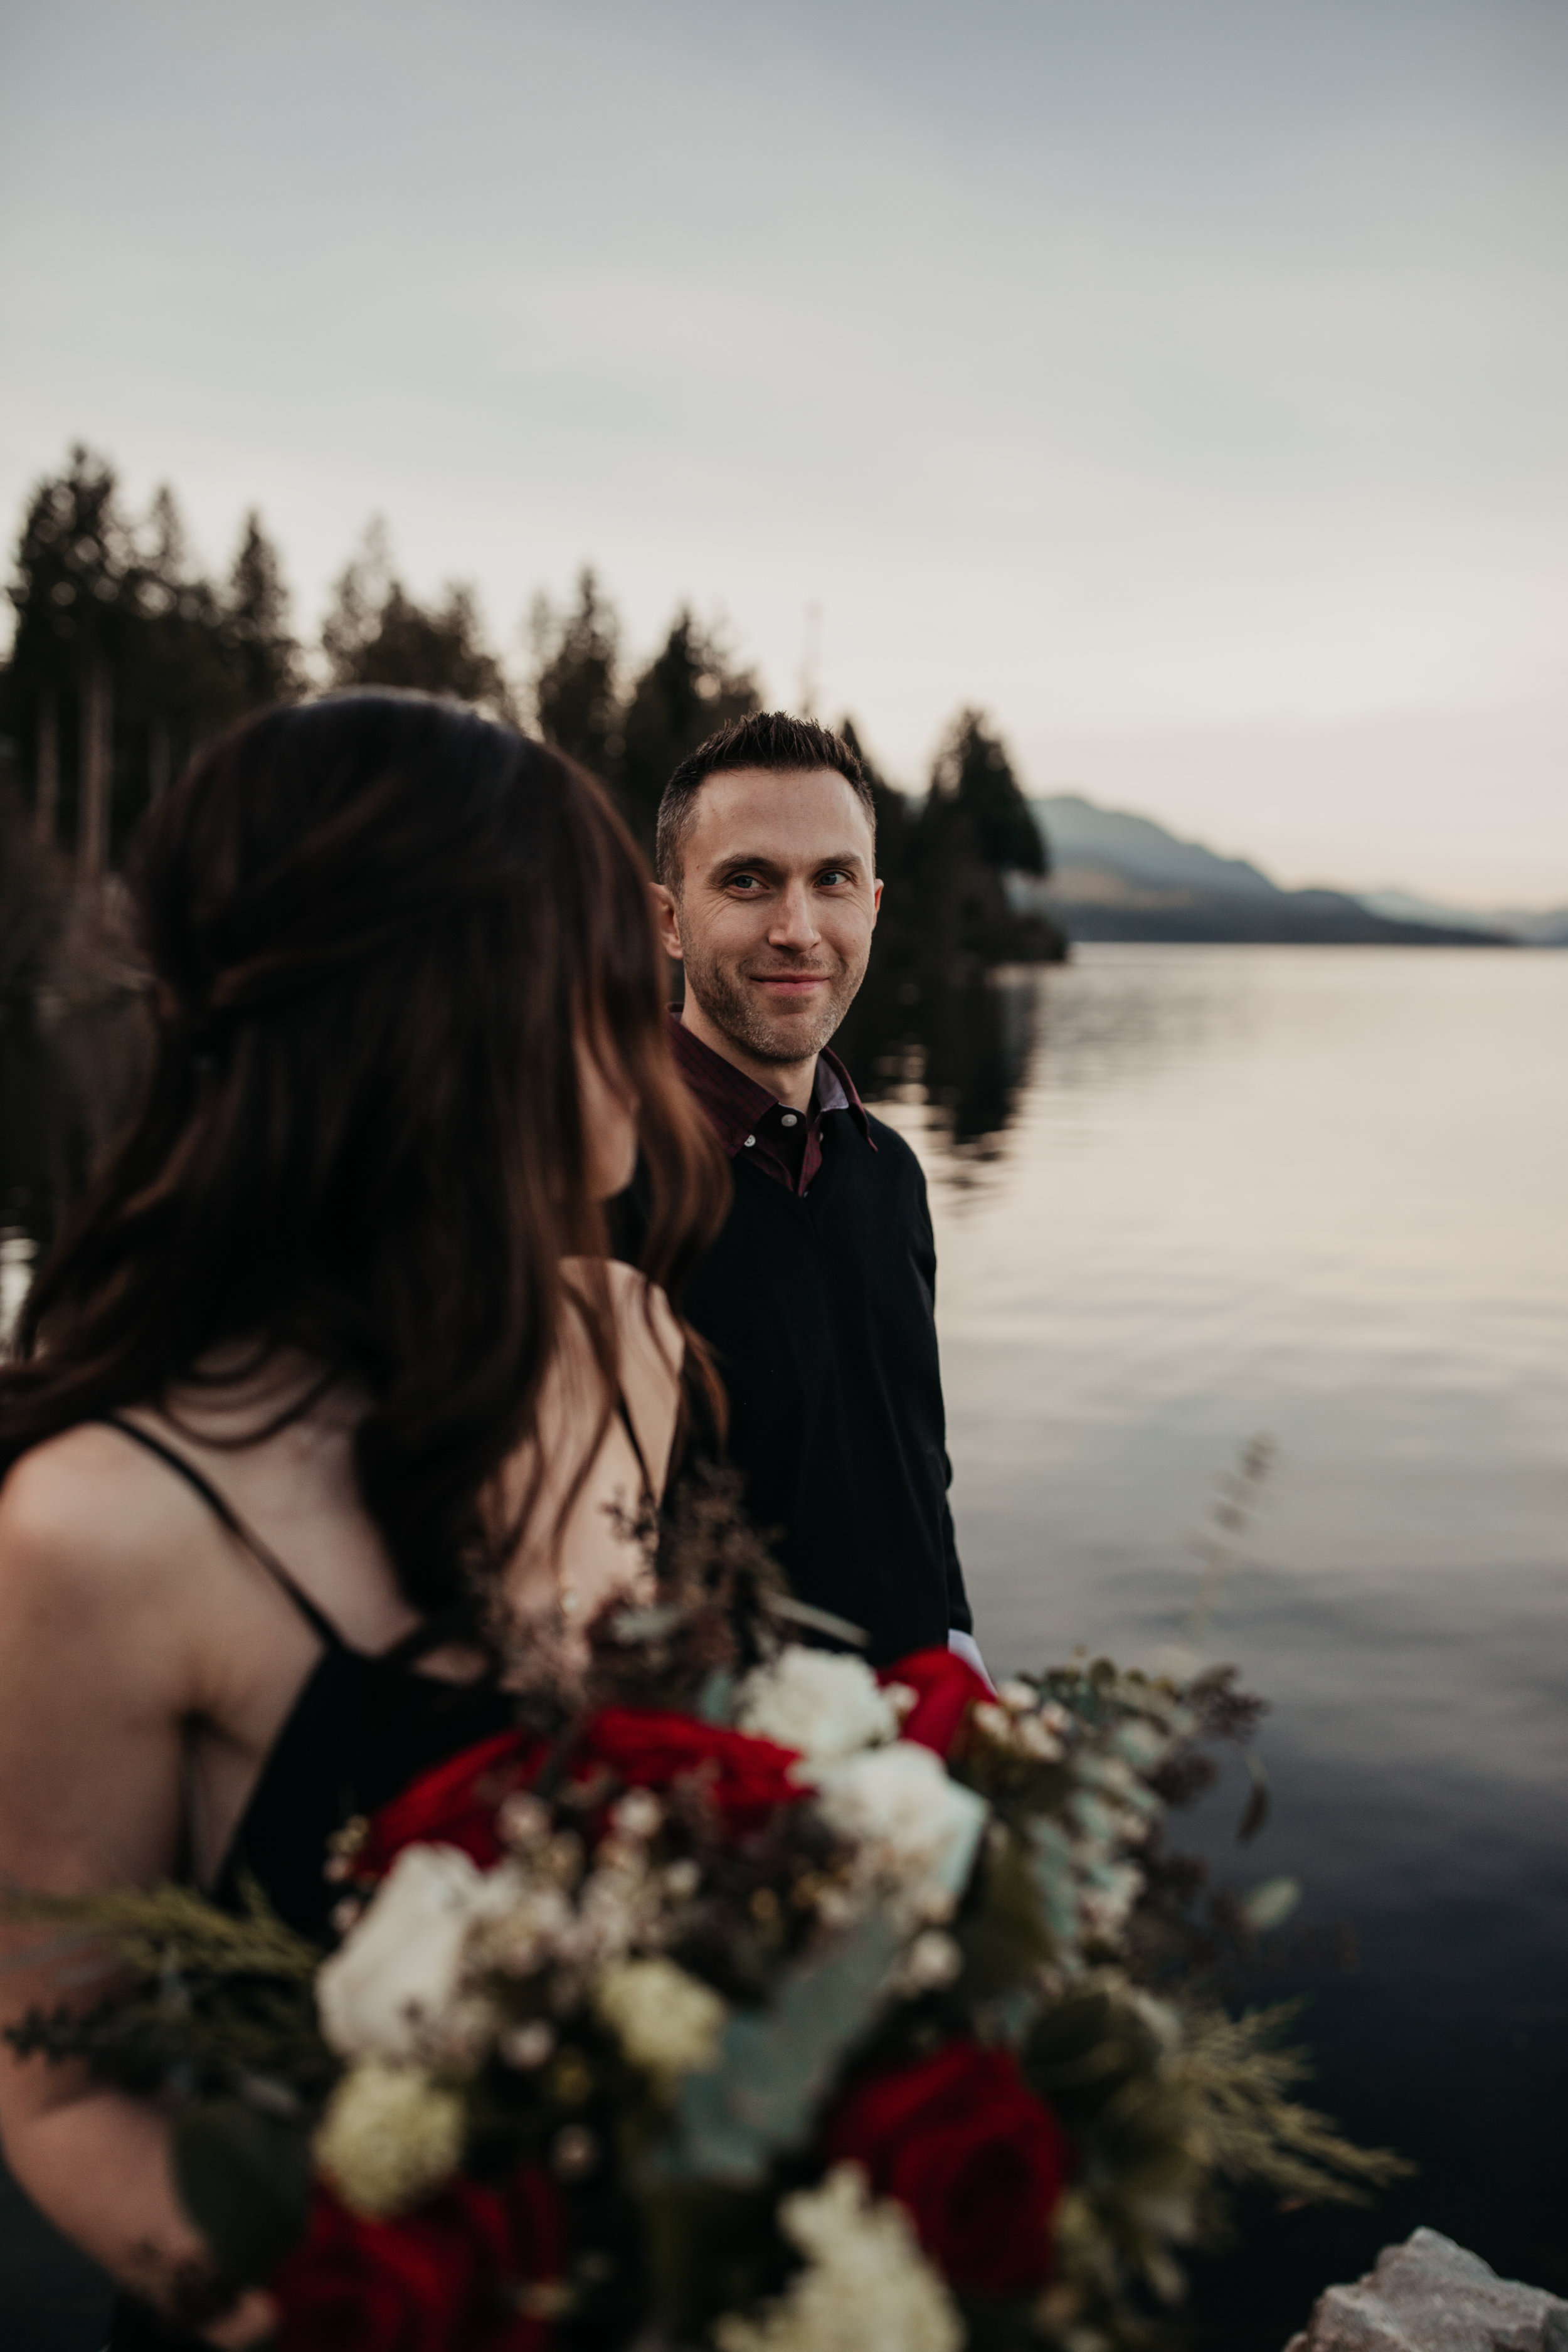 Sunshine Coast Engagement Photos - Sunshine Coast Wedding Photographer - Vancouver Wedding Photographe325r .JPG